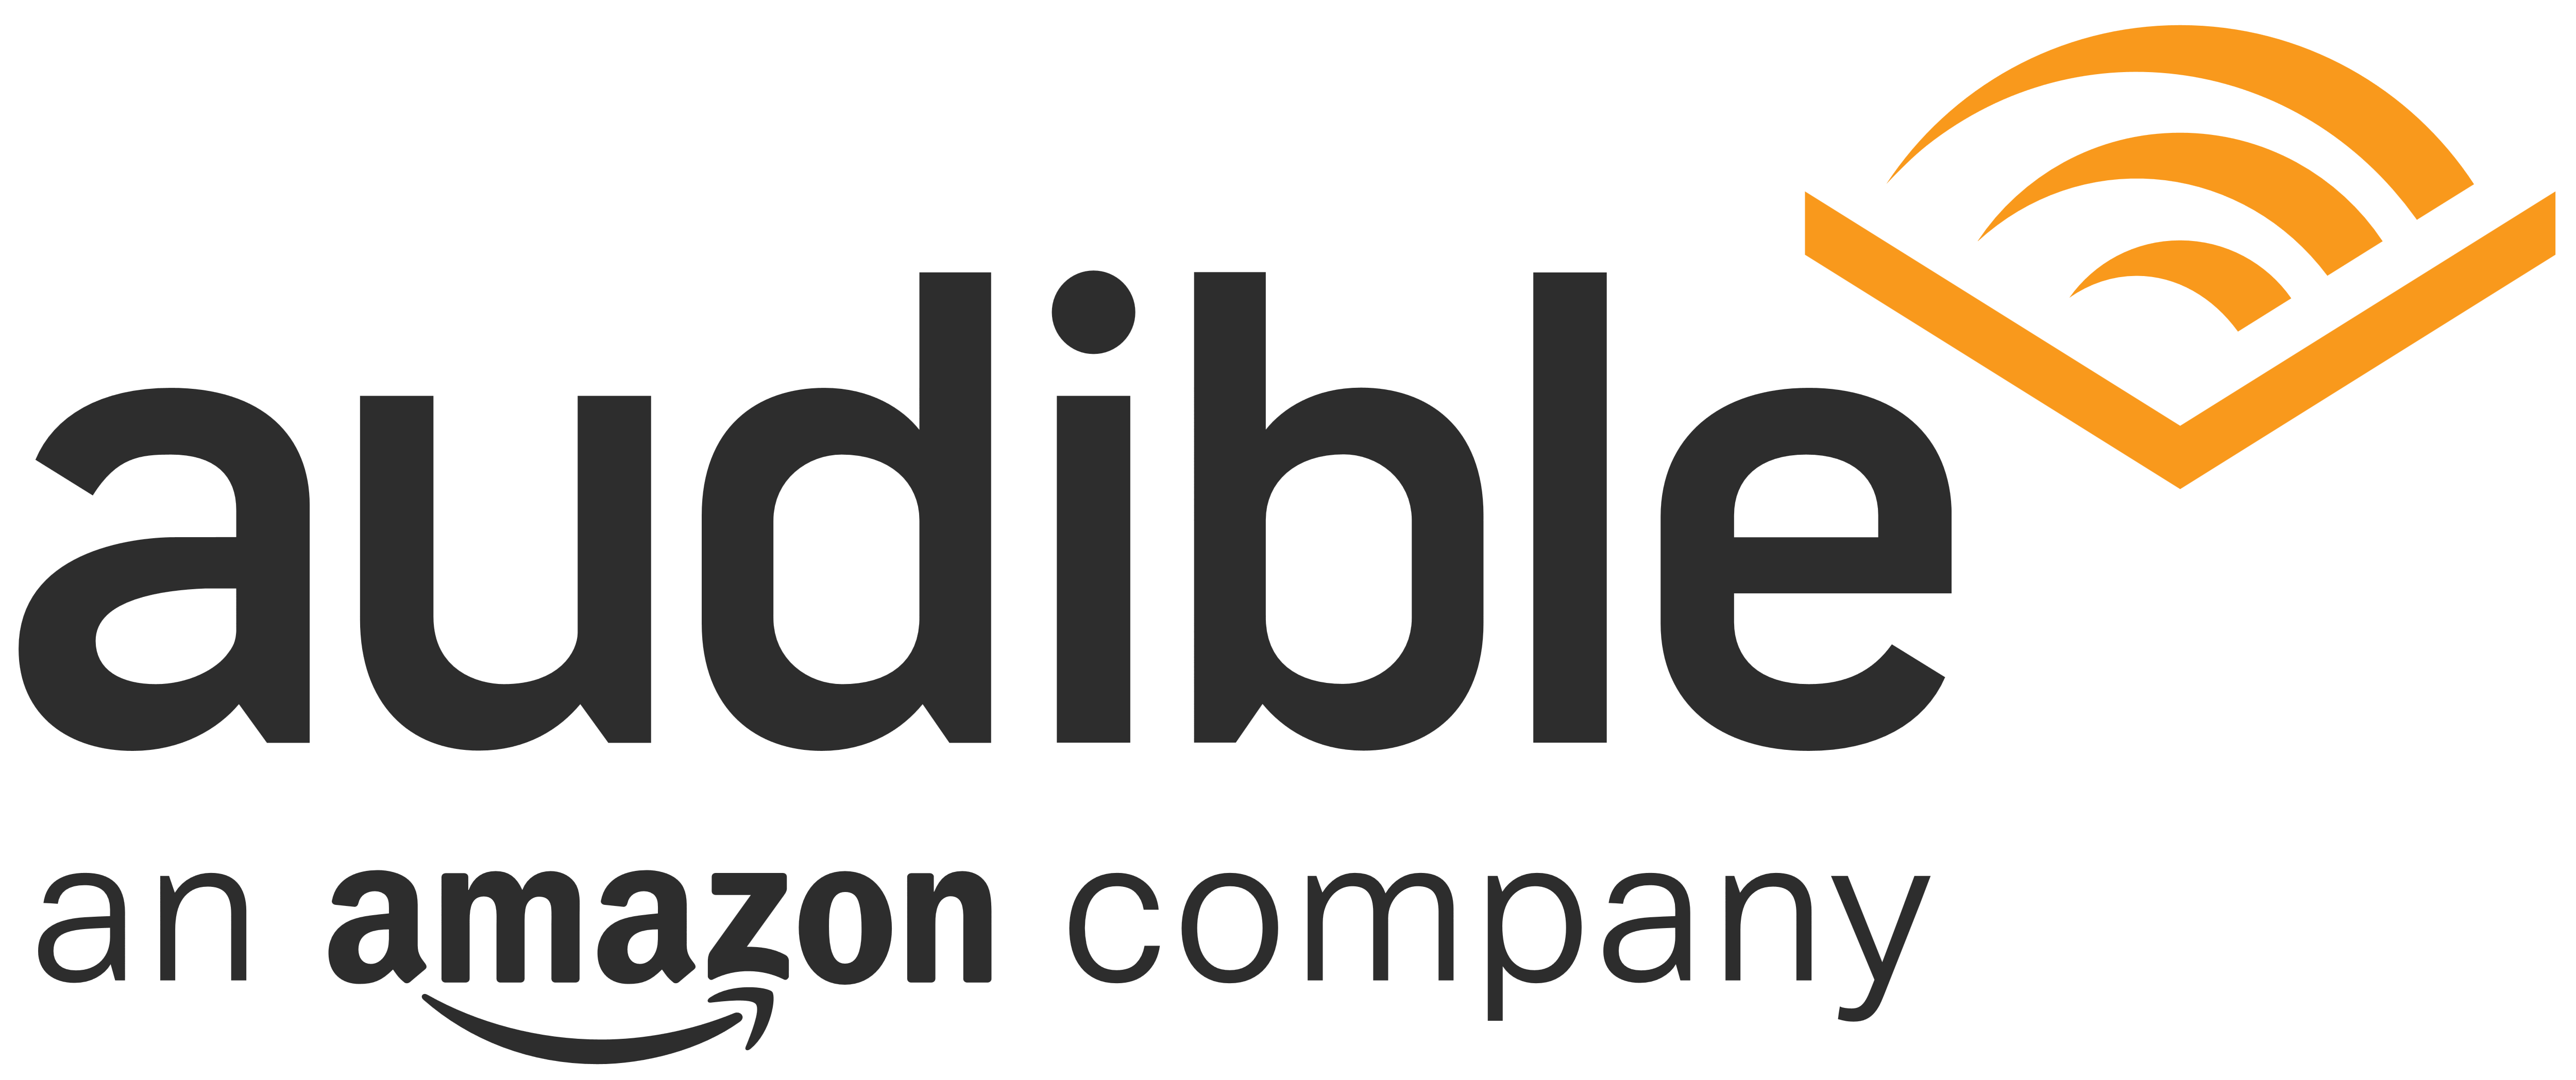 Audible_logo_an_Amazon_company